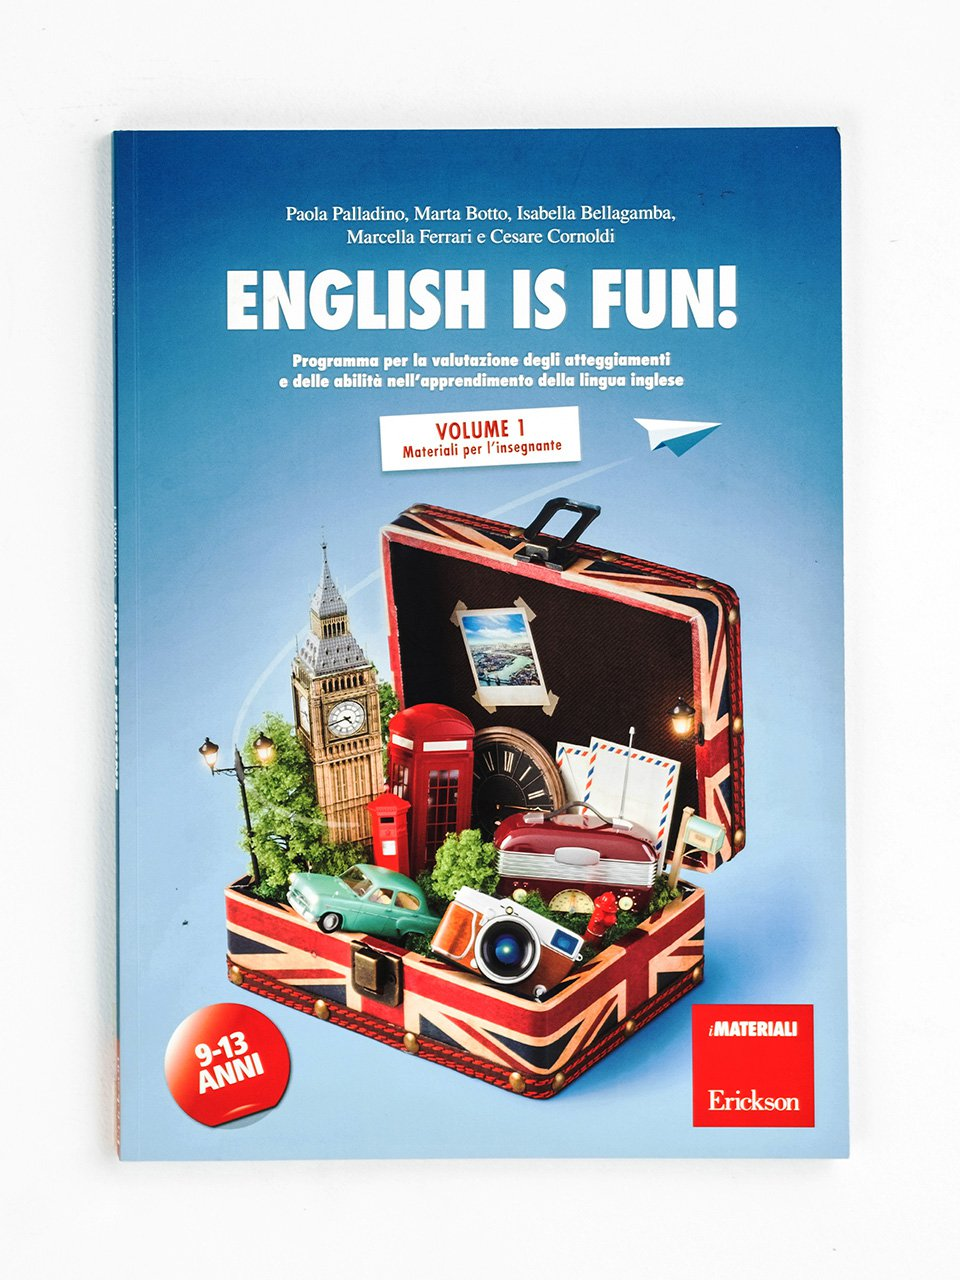 English is fun! Volume 1 - Français facile - Libri - App e software - Erickson